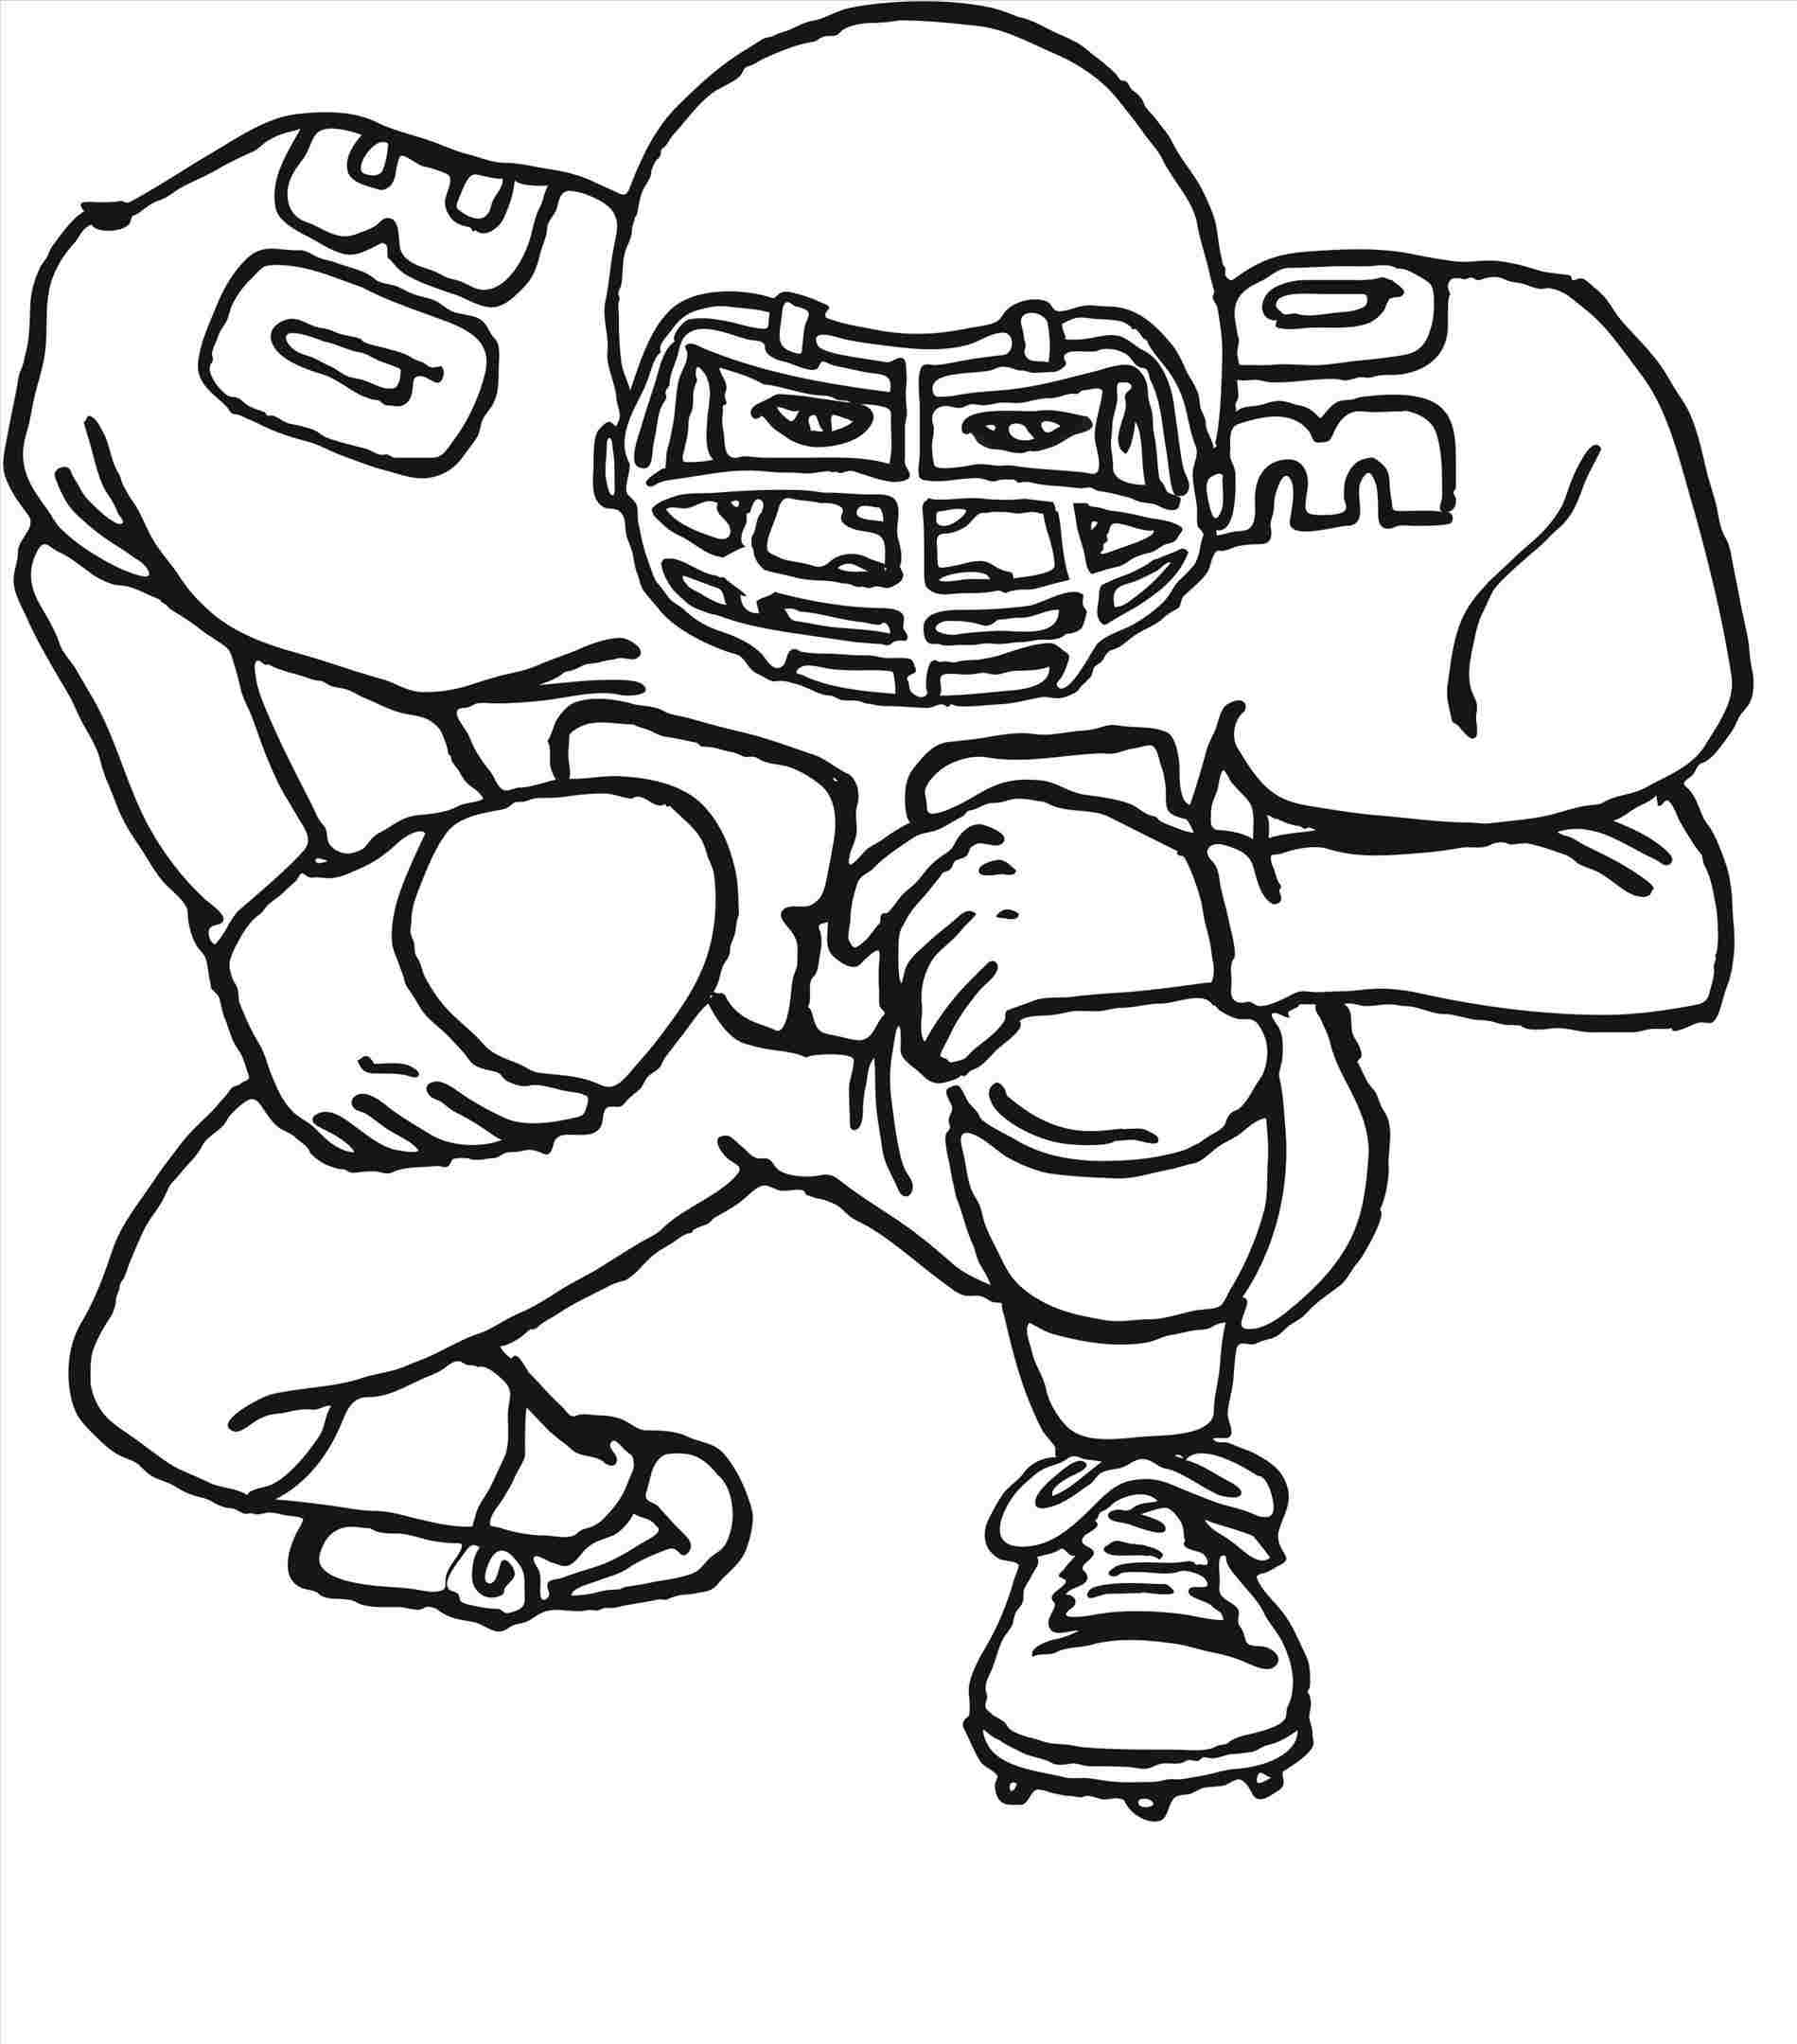 1899x2160 Free Football Players Cartoon Drawings Coloring Pages Of Drawing